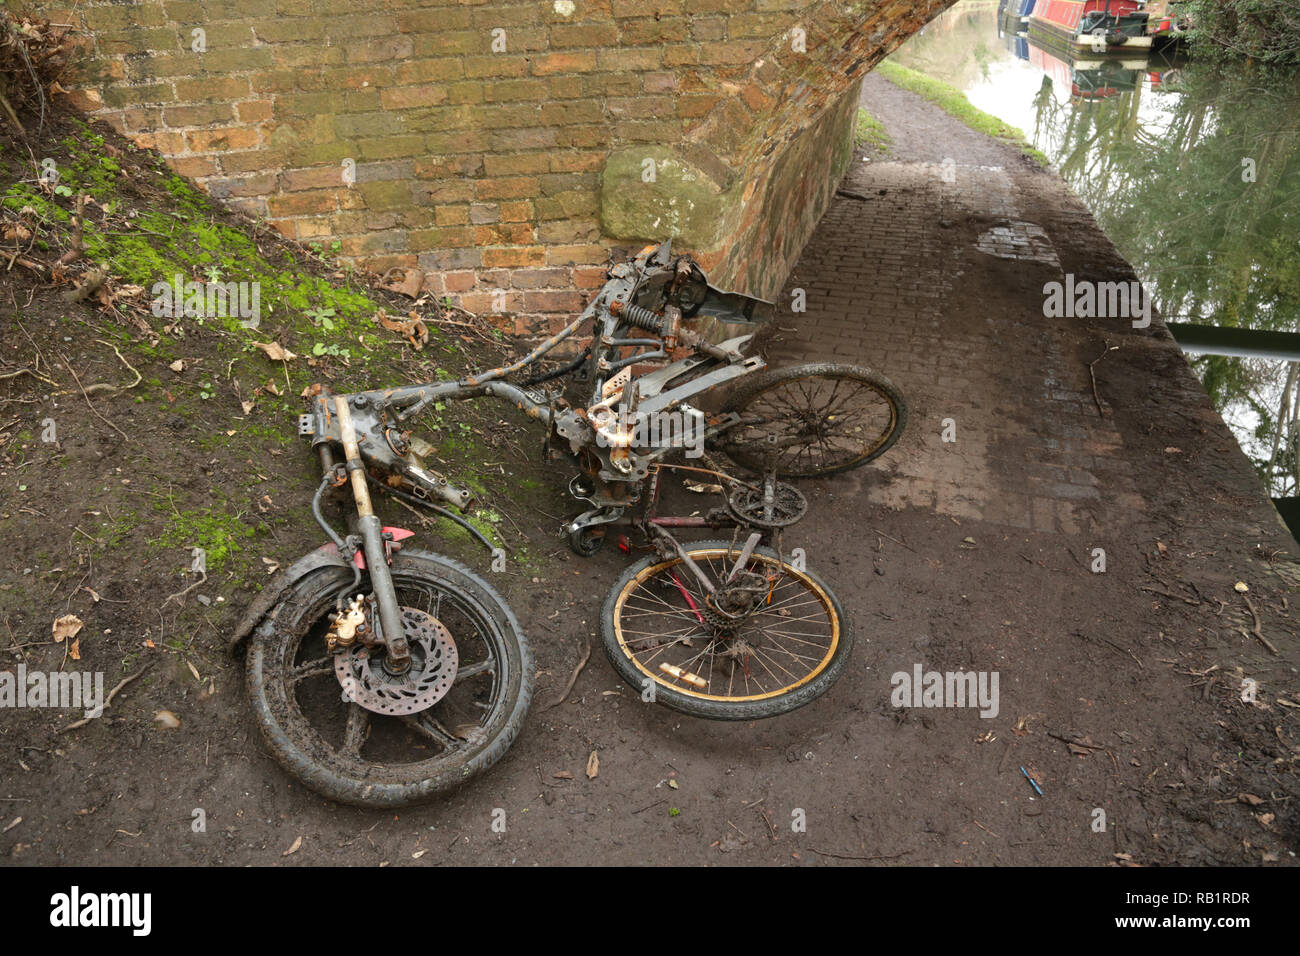 Motorcycle frame and cycle removed from canal and left on towpath, - Stock Image